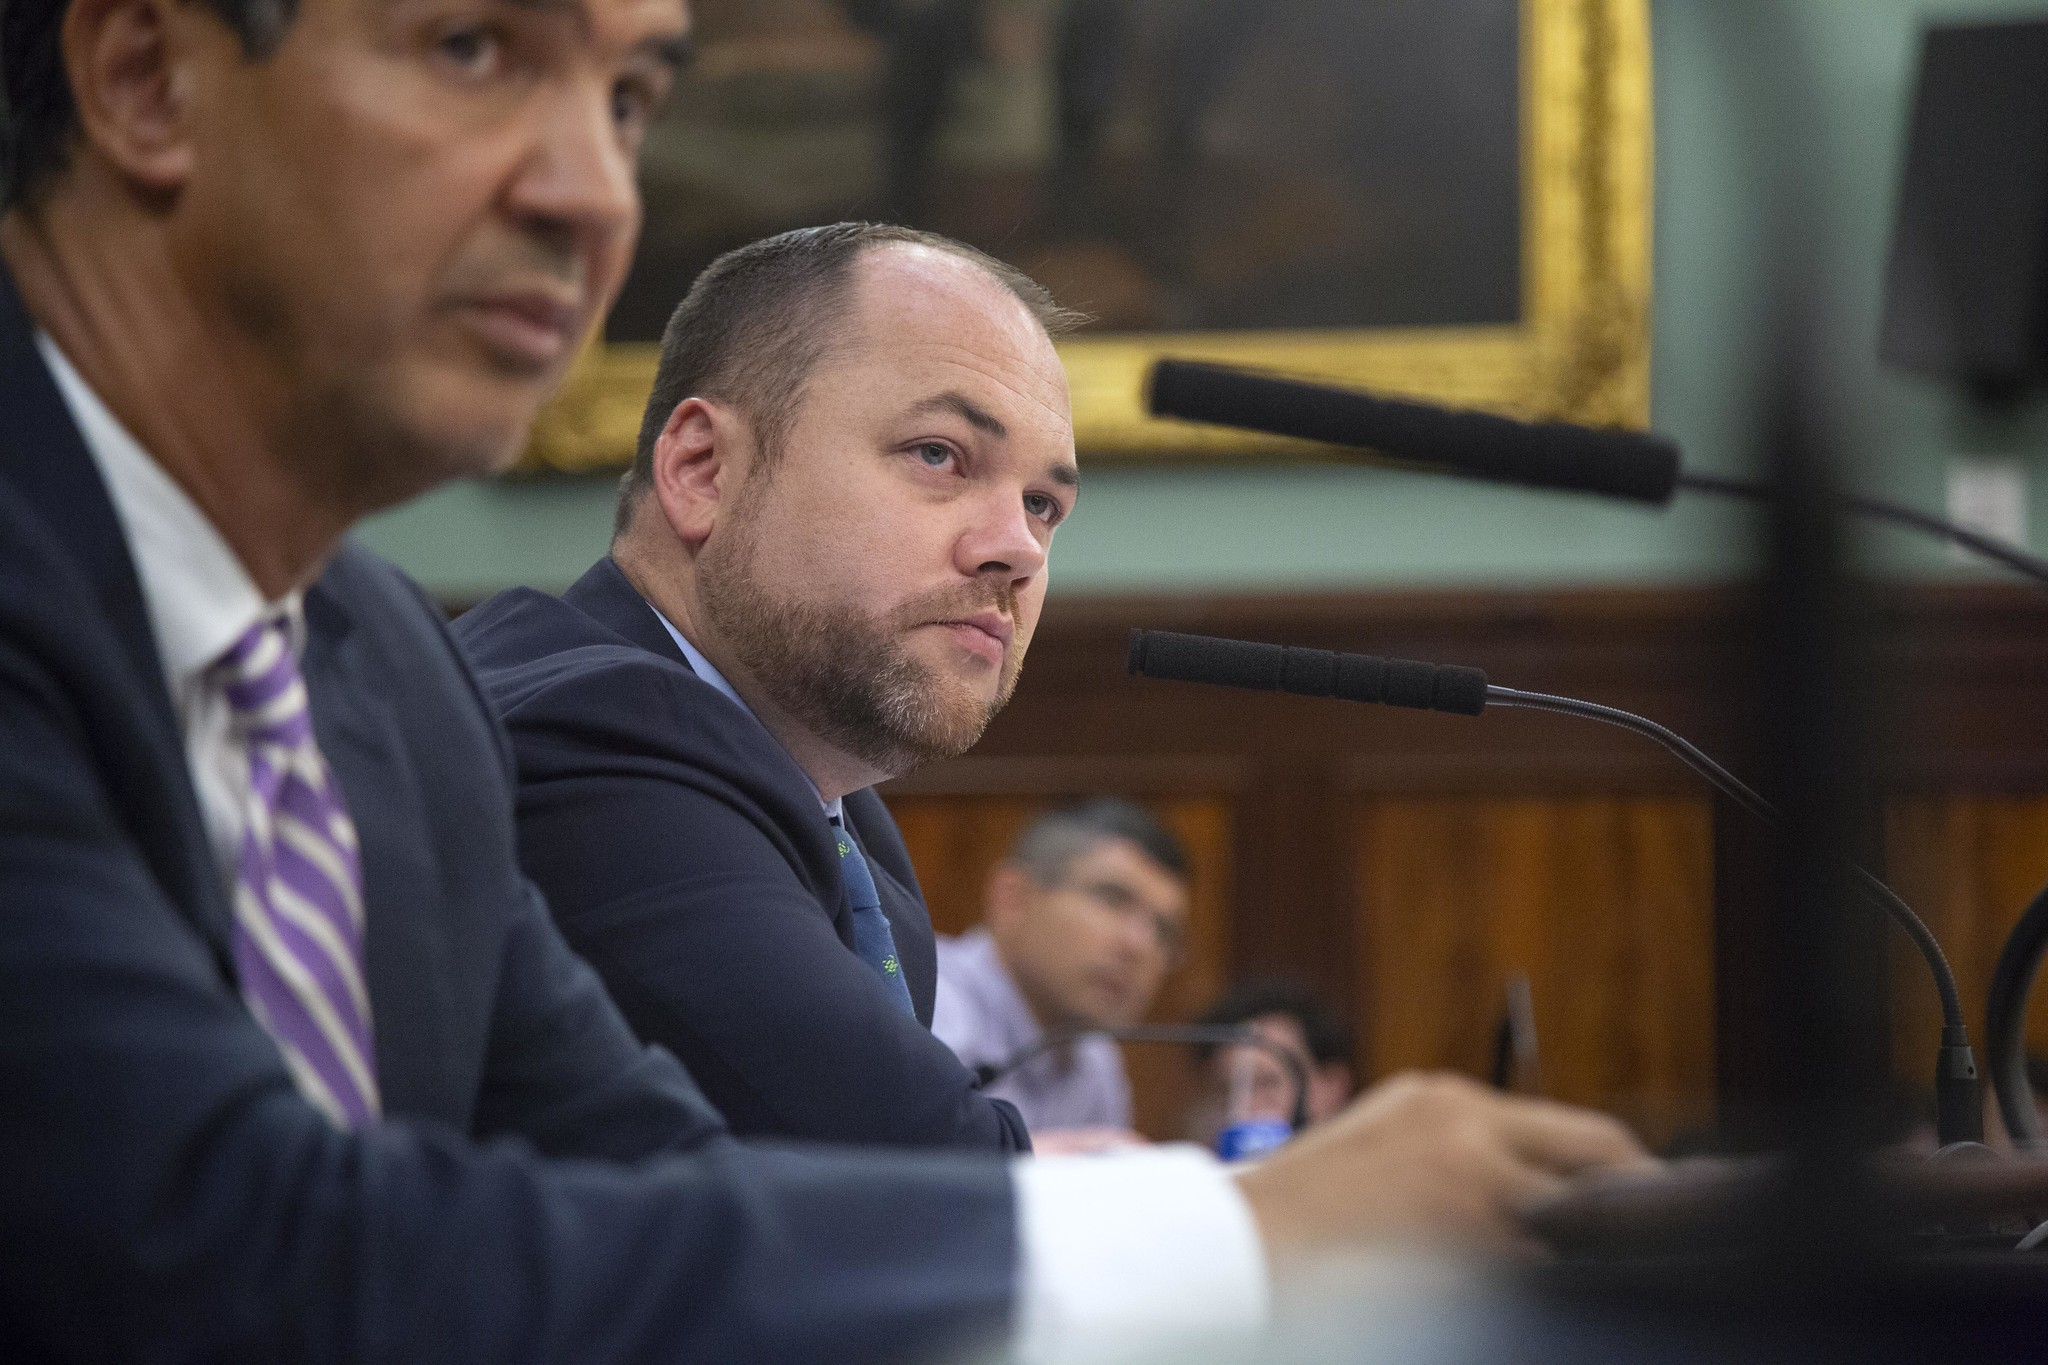 City Council Speaker Corey Johnson urged state lawmakers to repeal the loitering law without decriminalizing the sex trade. Photo by John McCarten/City Council via Flickr